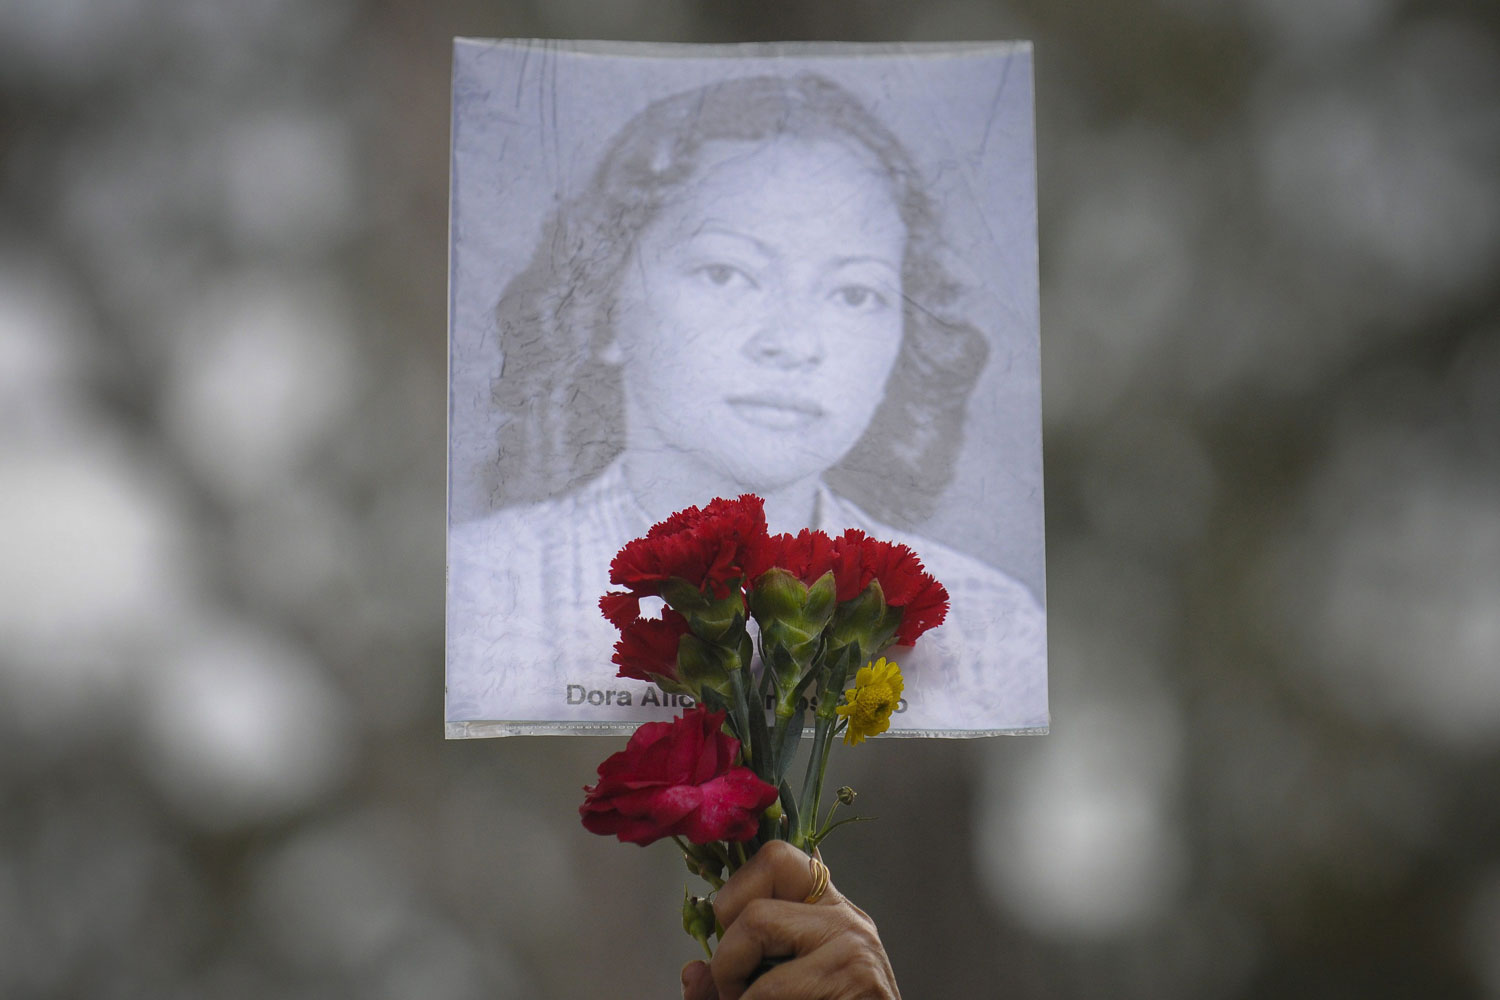 July 30, 2011. A victim's photograph is held up during a rally to commemorate the 36th anniversary of a massacre of student protesters carried out by soldiers in San Salvador in 1975. San Salvador, El Salvador.  Demonstrators asked Salvadoran President Mauricio Funes to create a special commision to investigate the massacre.